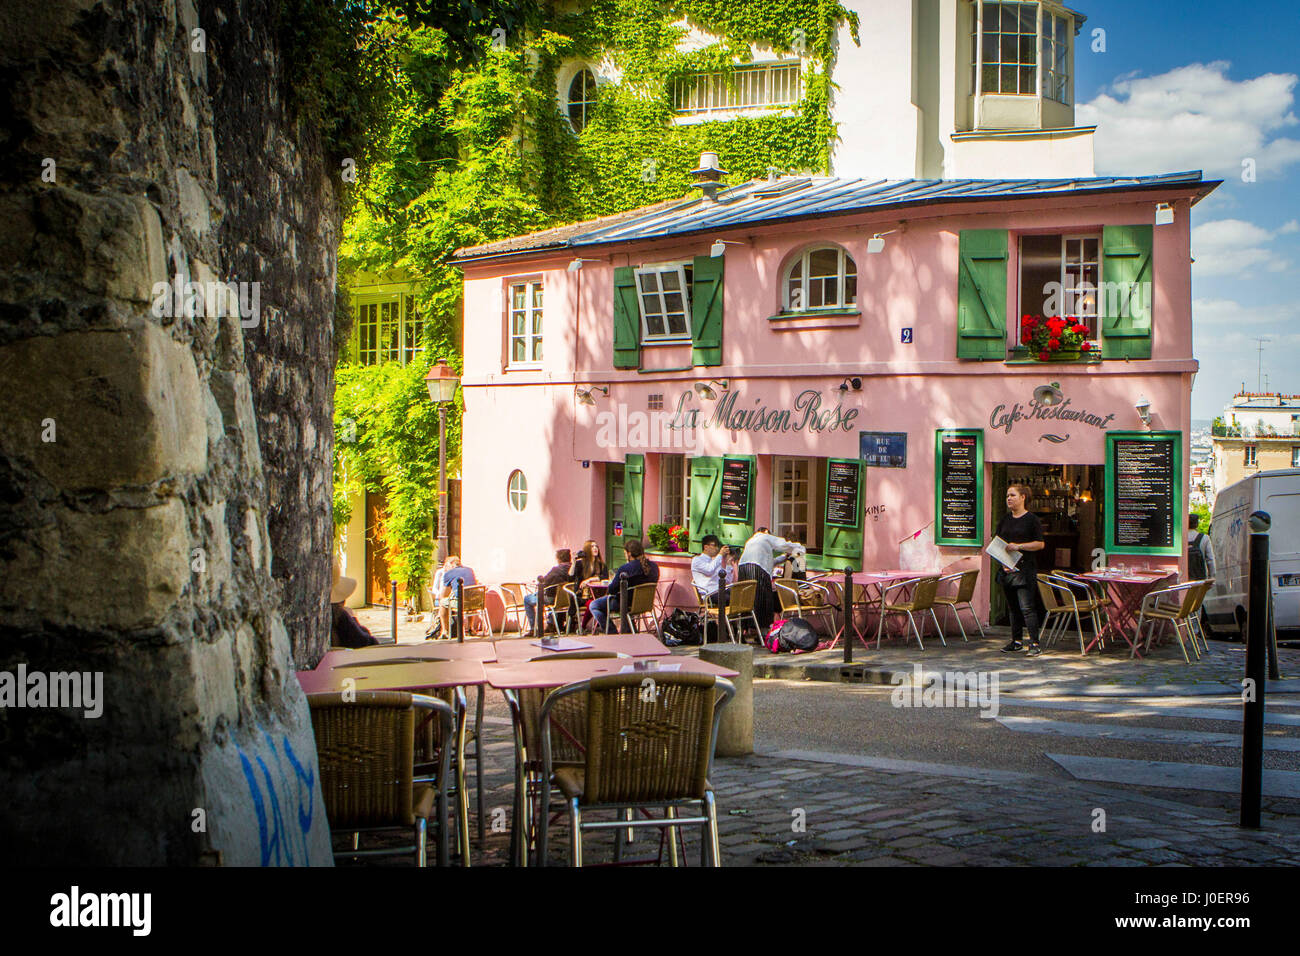 la maison rose cafe in the montmartre neighborhood of paris france stock photo 138008562 alamy. Black Bedroom Furniture Sets. Home Design Ideas